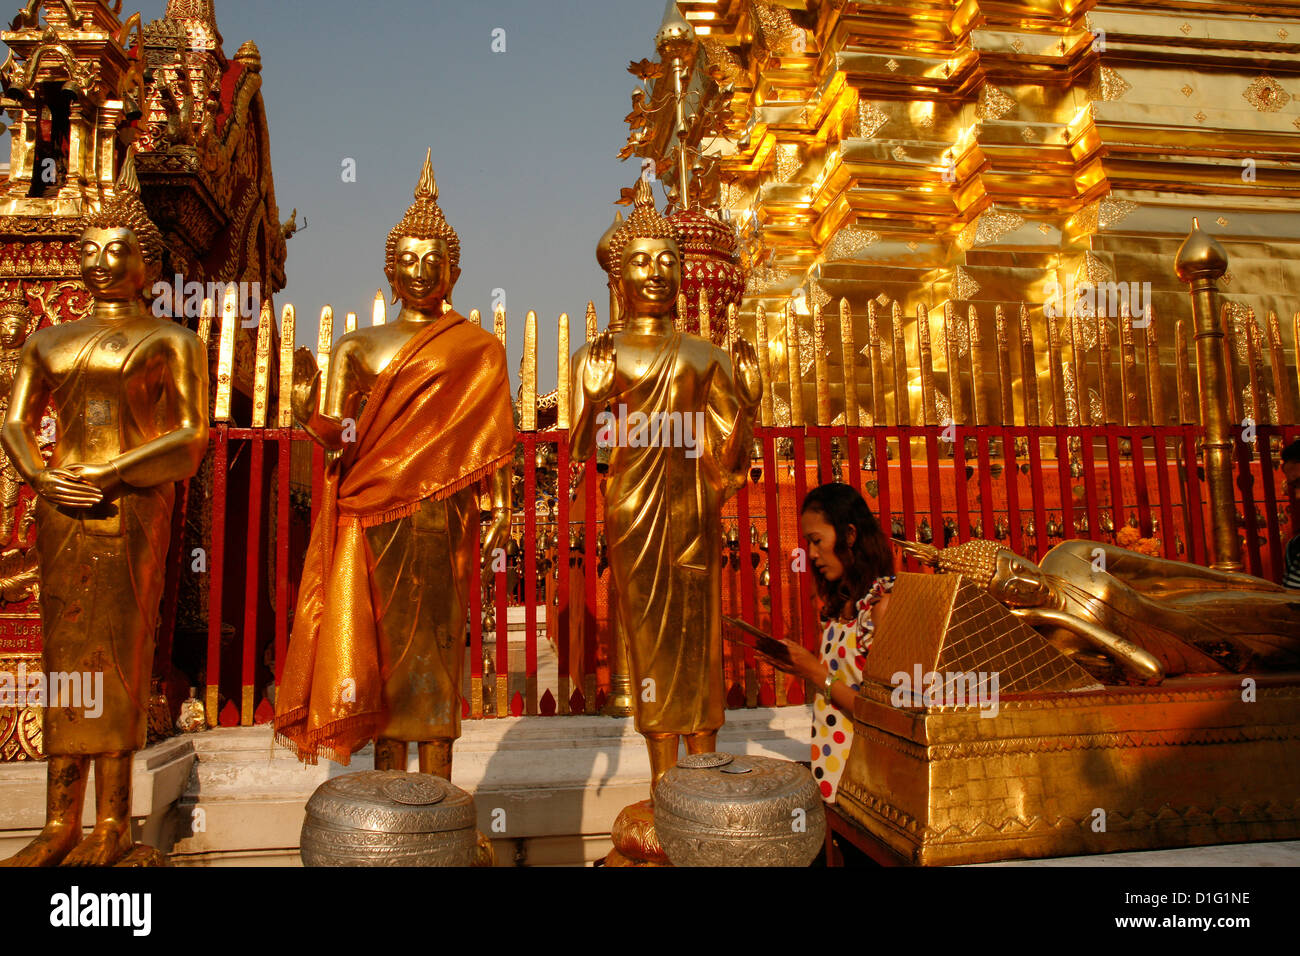 Procession and Buddha statues in Doi Suthep temple, Chiang Mai, Thailand, Southeast Asia, Asia - Stock Image